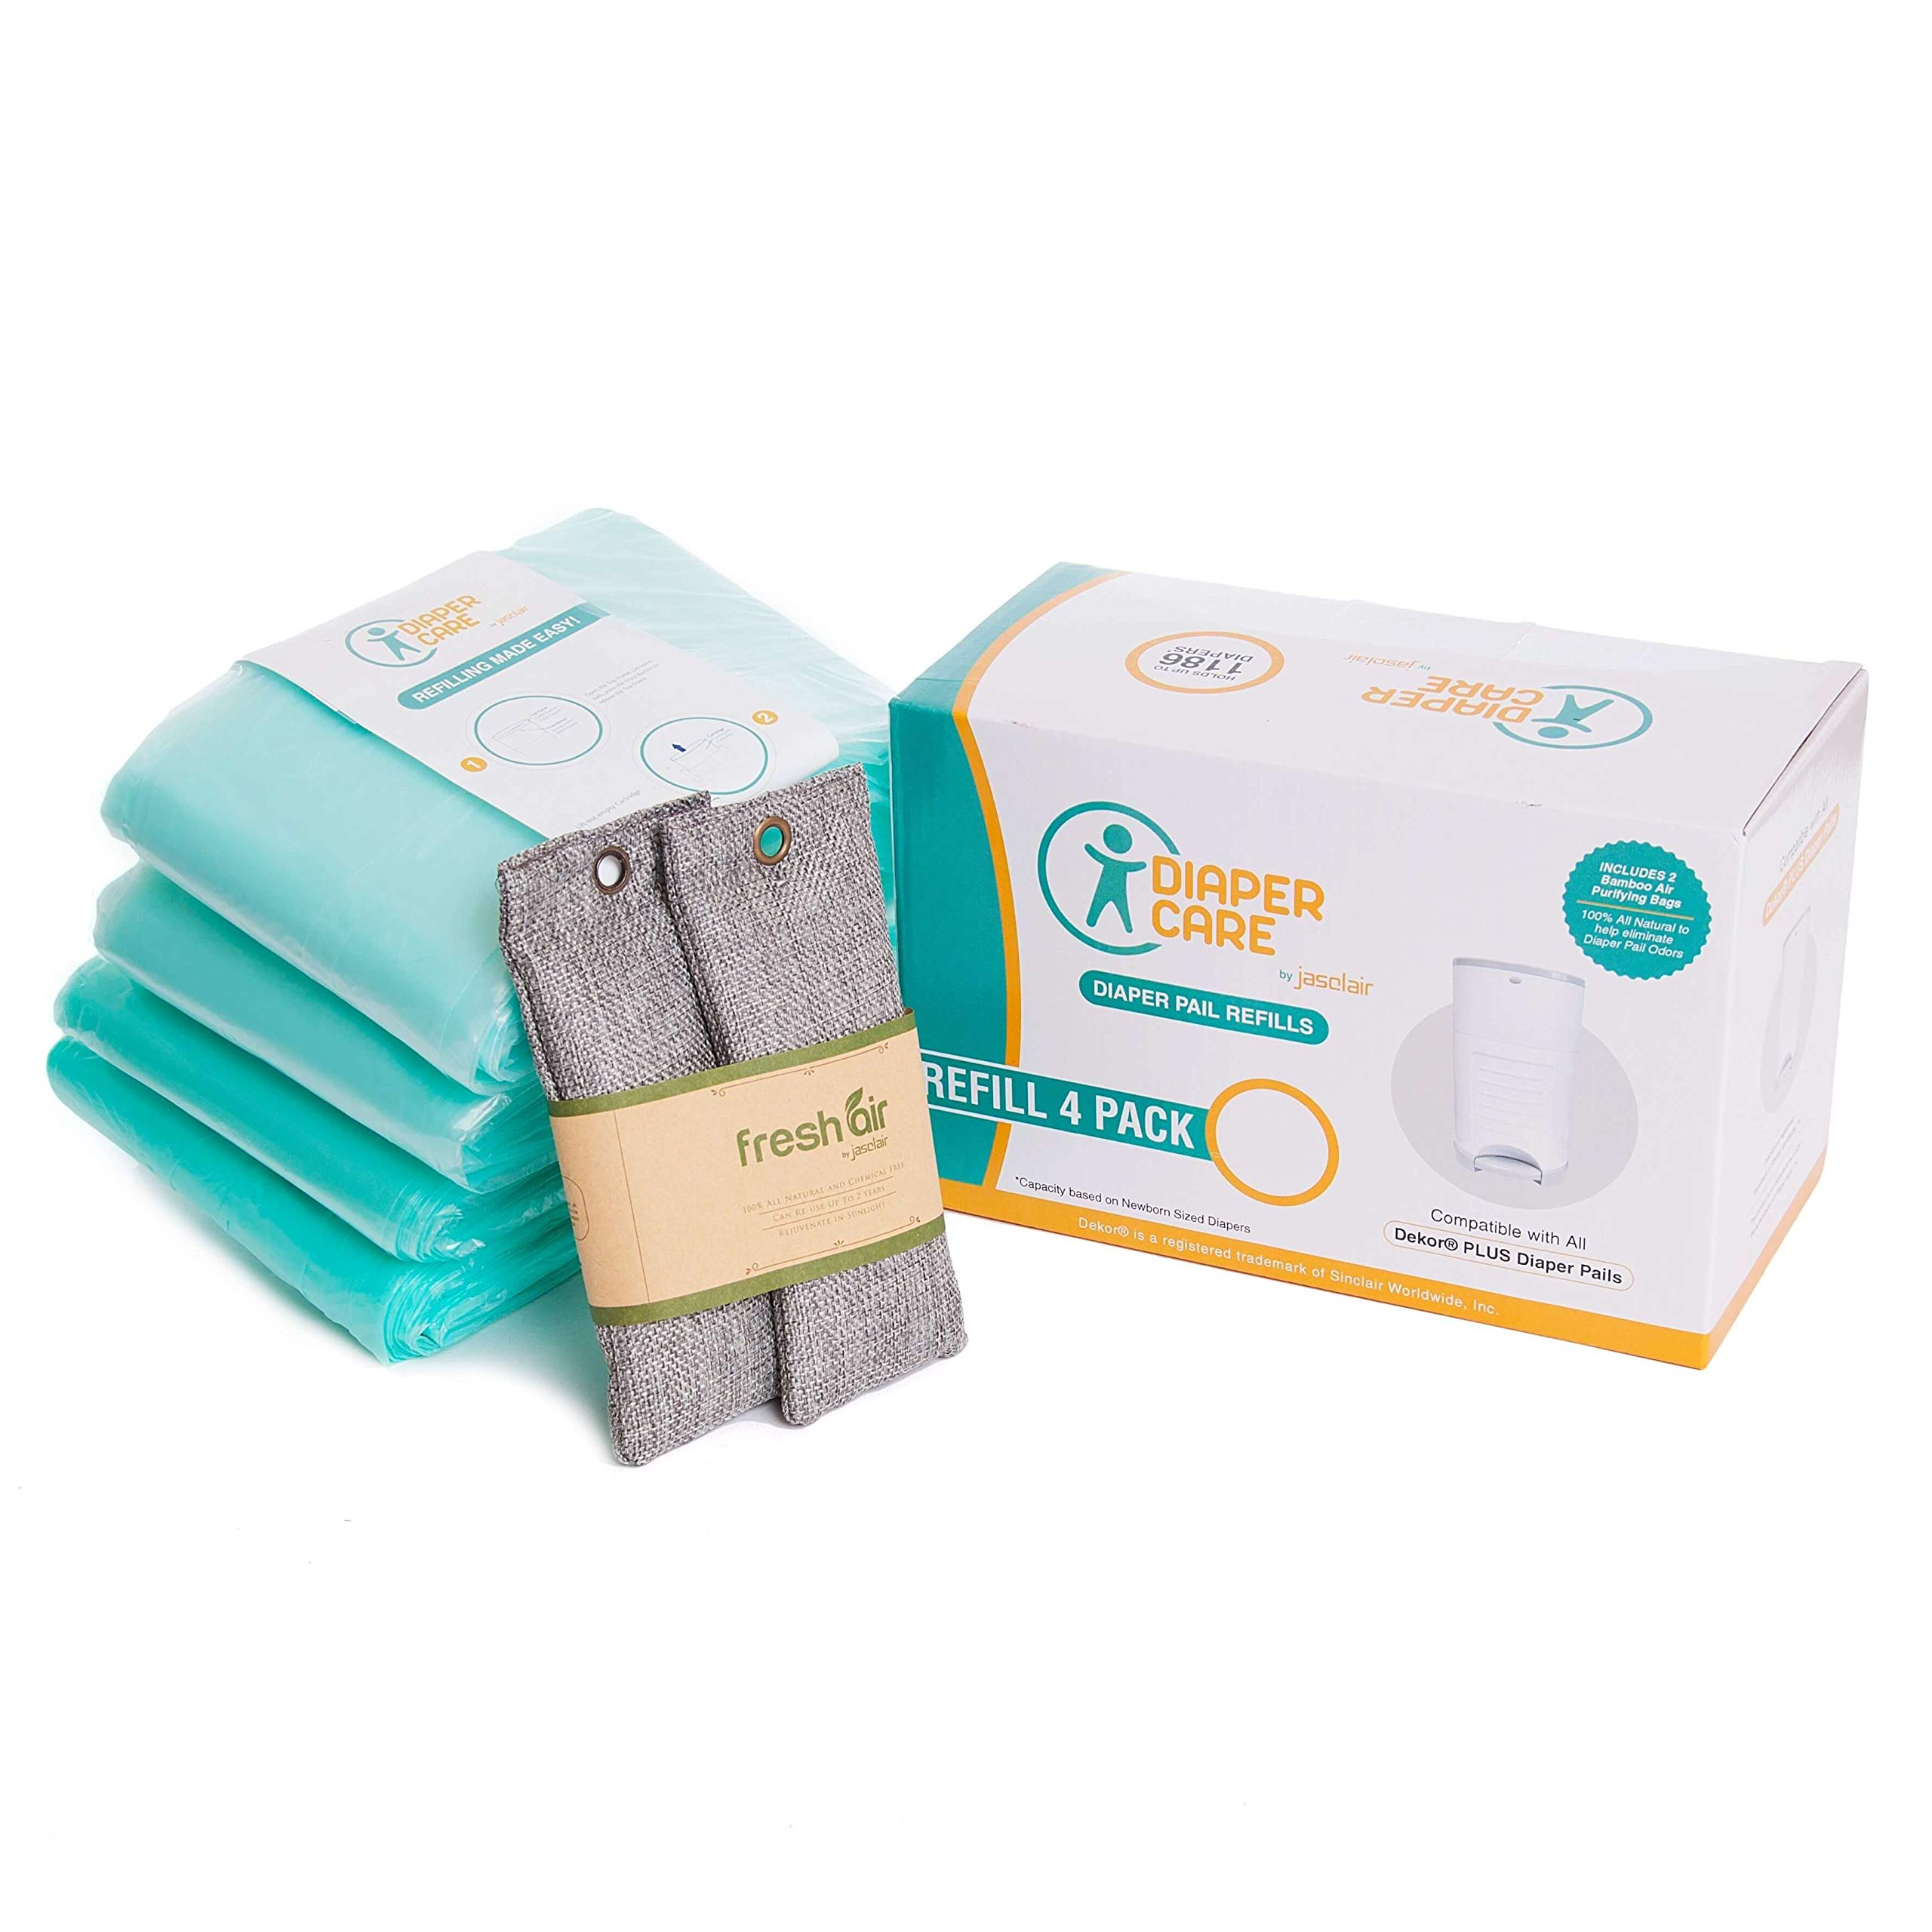 4 Pack Diaper Refill Liners - Compatible with Dekor PLUS Refill - Disposable Diaper Pail Liners Hold Up To 2372 Diapers – Baby Scented Refills with Natural Bamboo Charcoal Odor Smell Eliminator Bags